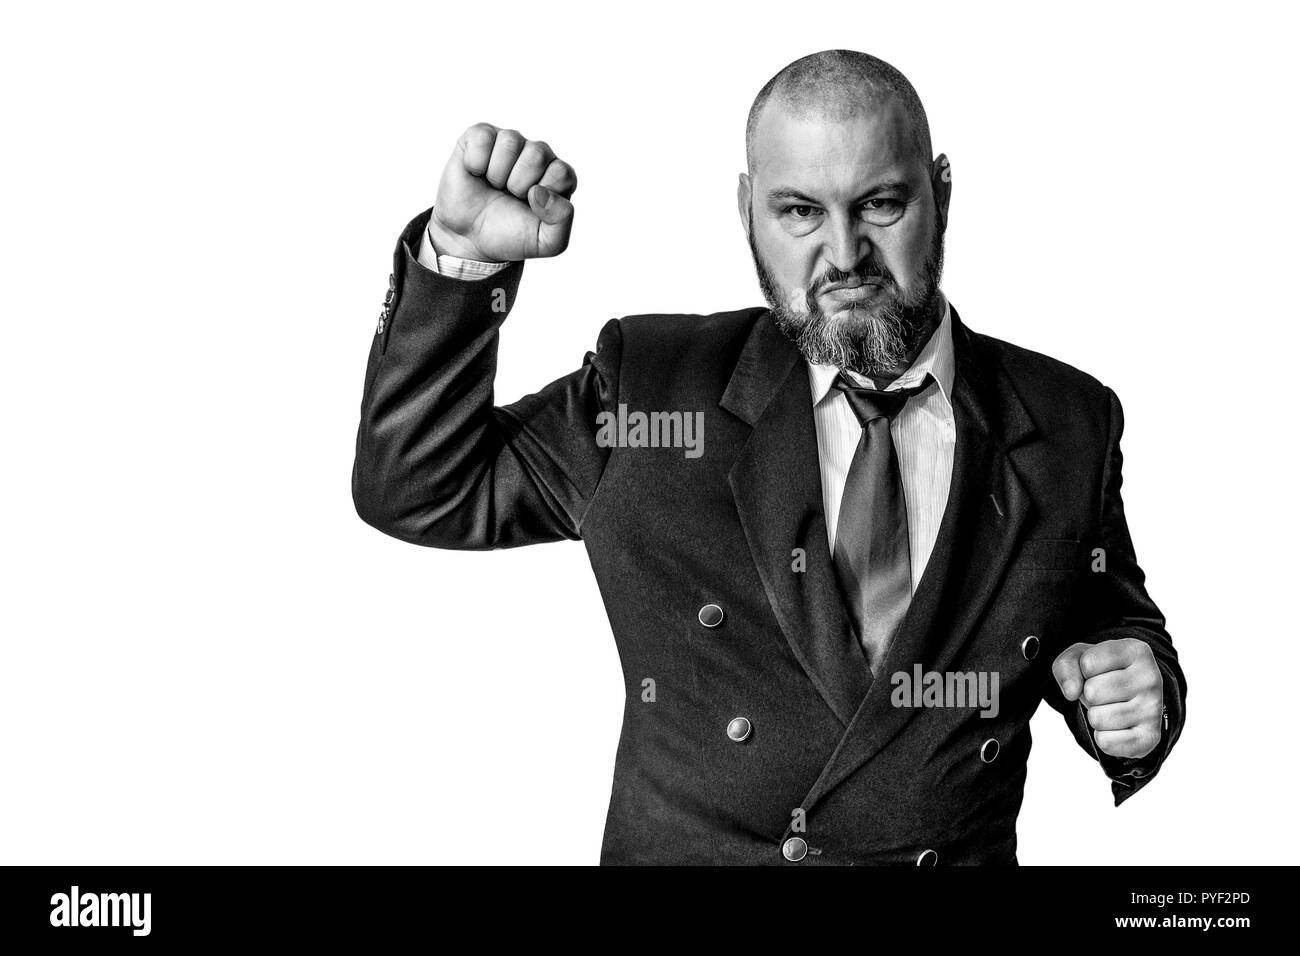 A man with a determined expression raised his hand in a clenched fist to the top. Monochrome photo. - Stock Image